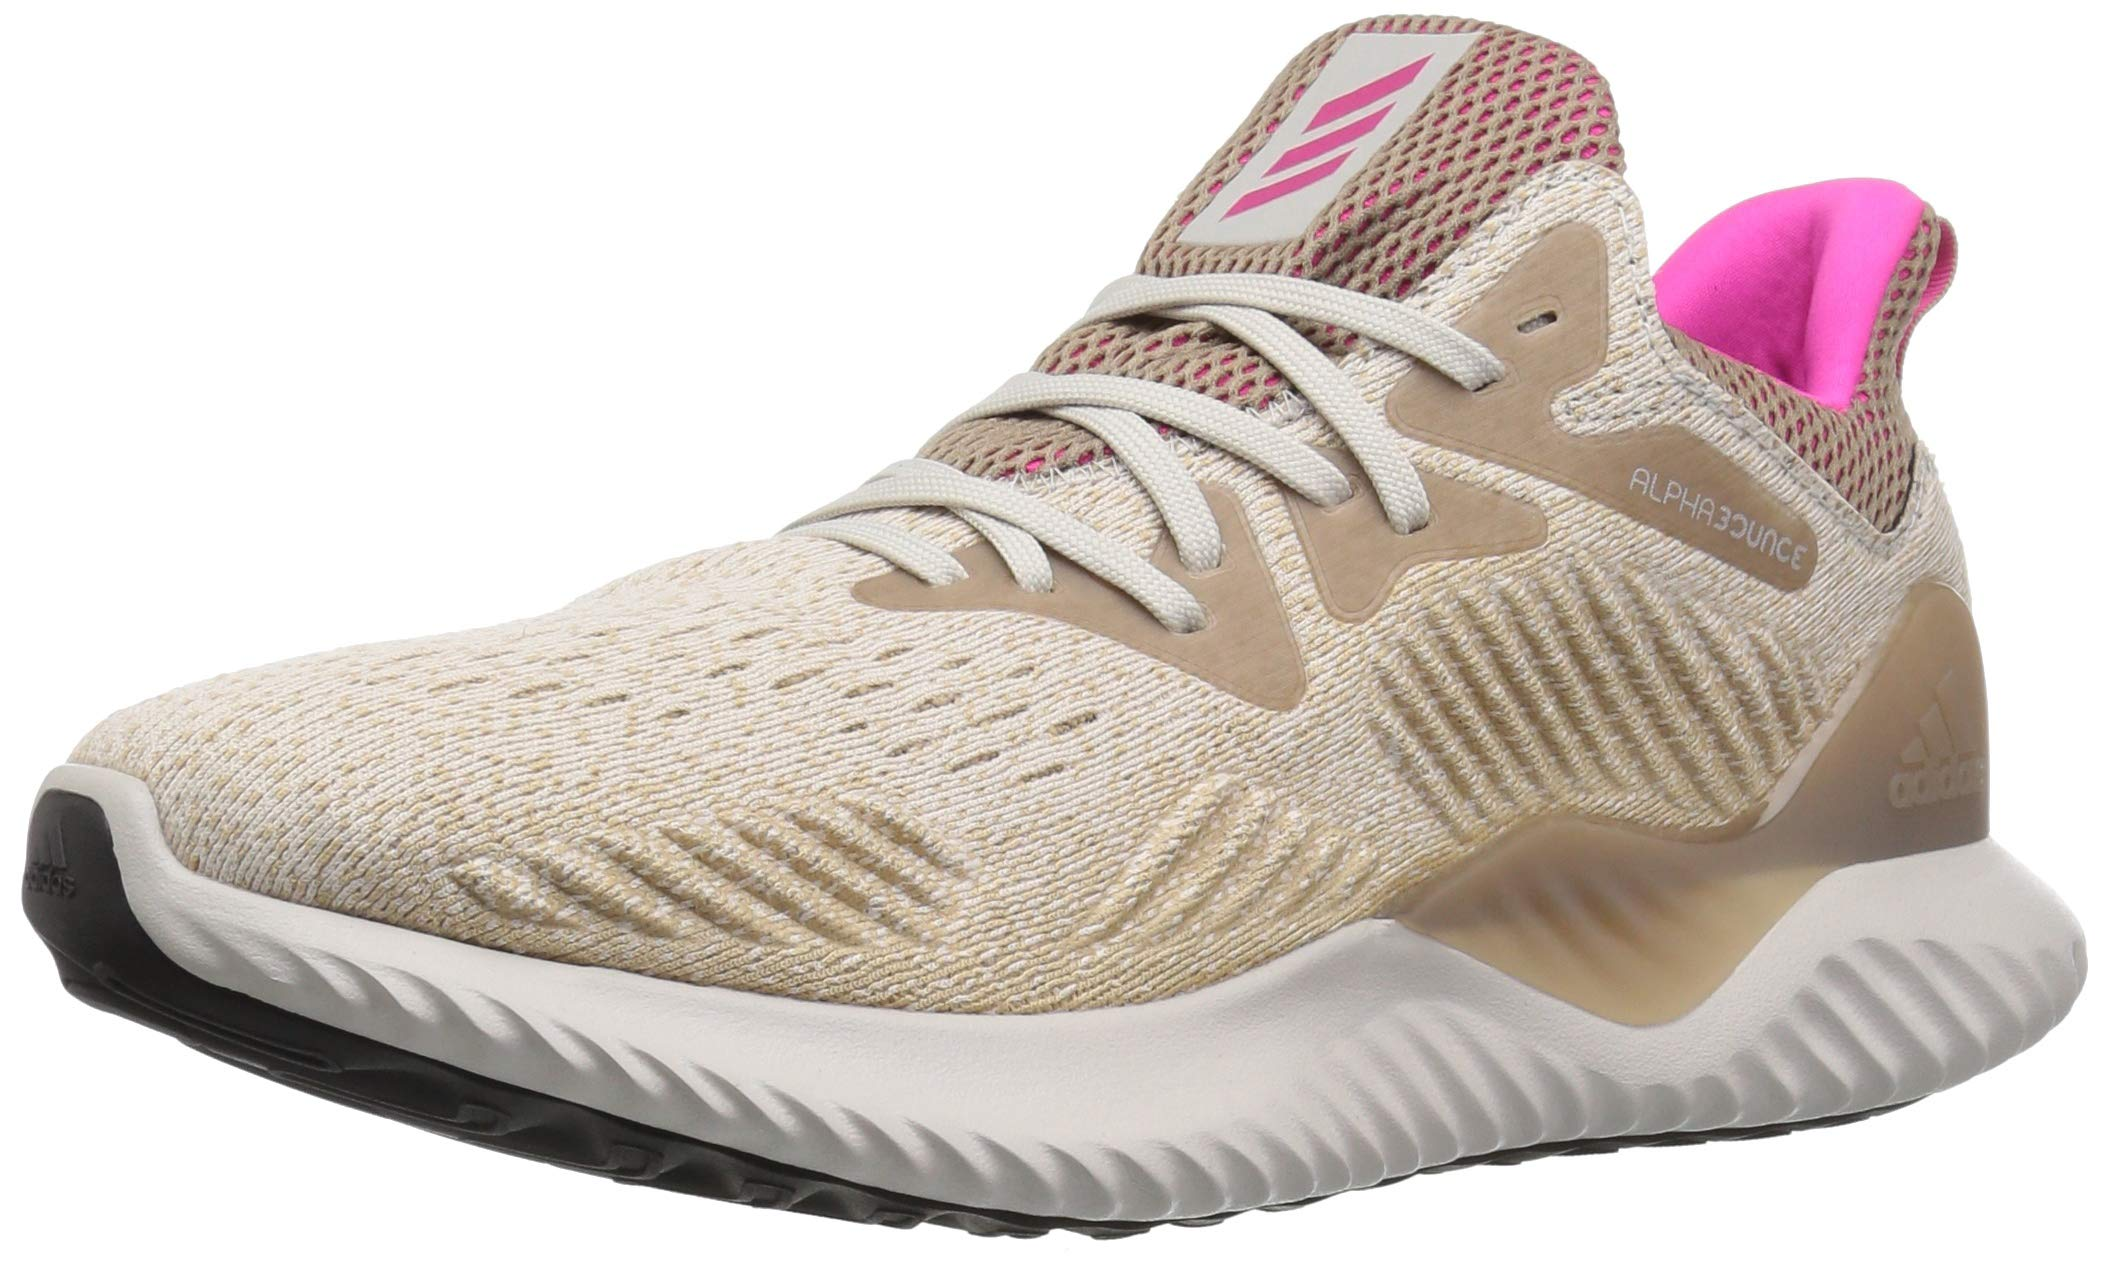 adidas Men's Alphabounce Beyond Running Shoe, Chalk Pearl/Shock Pink/Trace Khaki, 7.5 M US by adidas (Image #1)